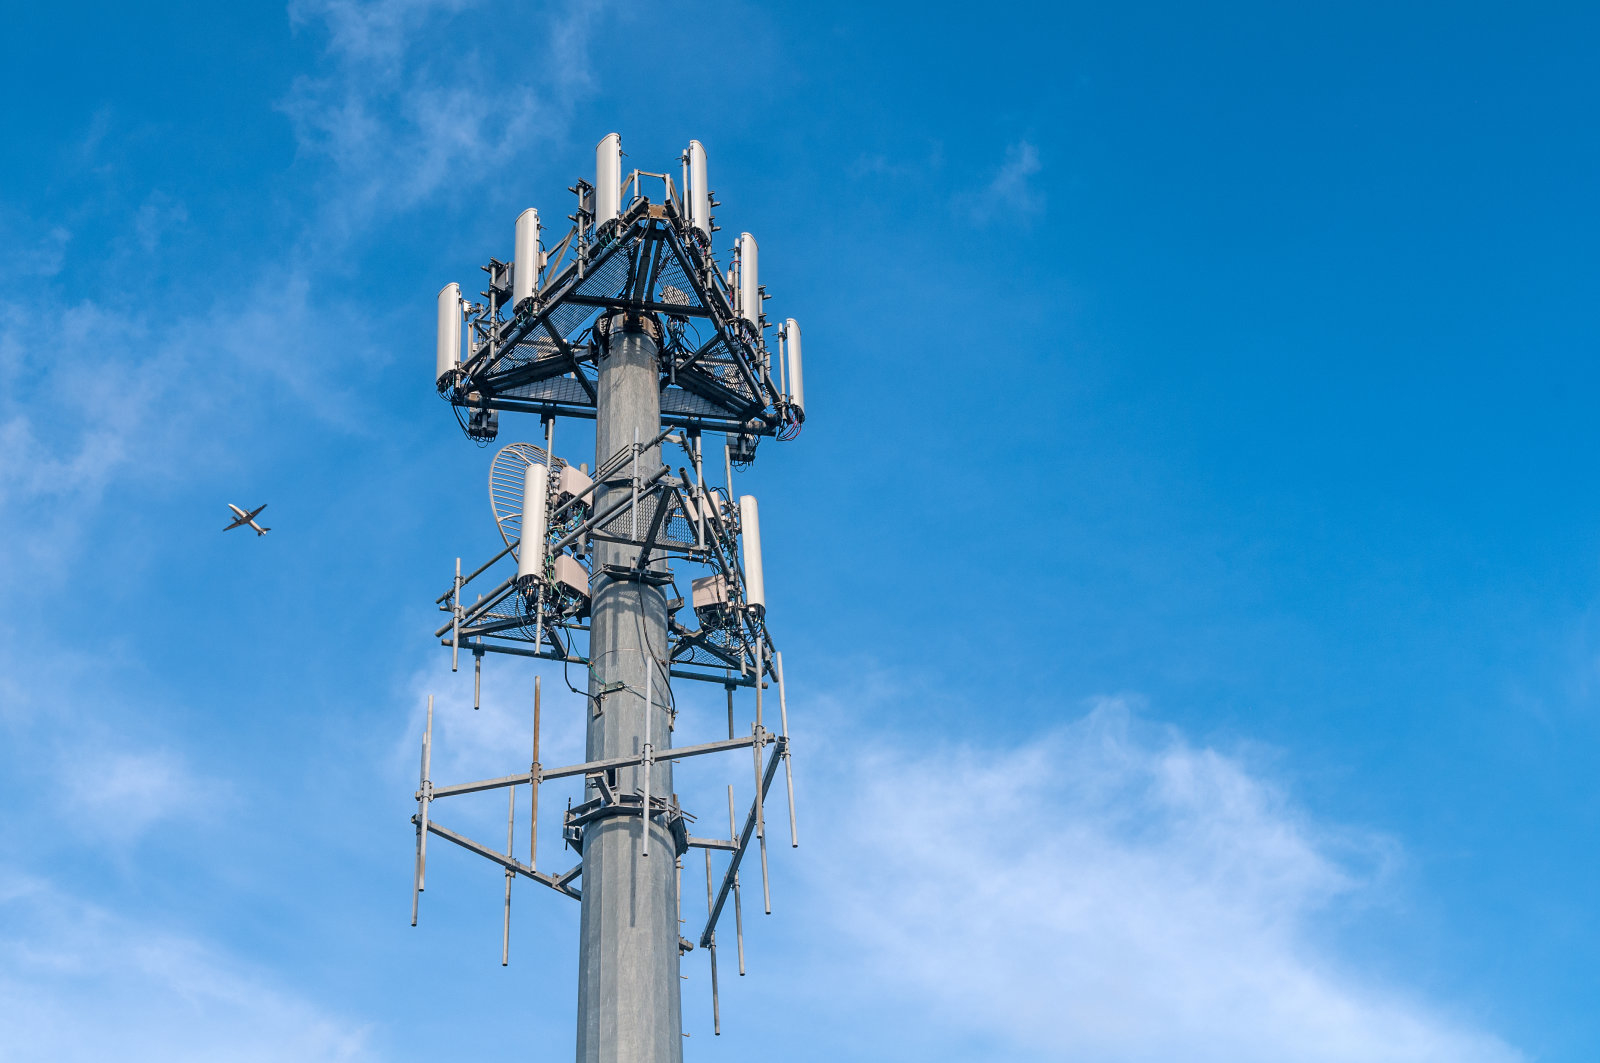 Supreme Court ruling requires search warrant for phone location data